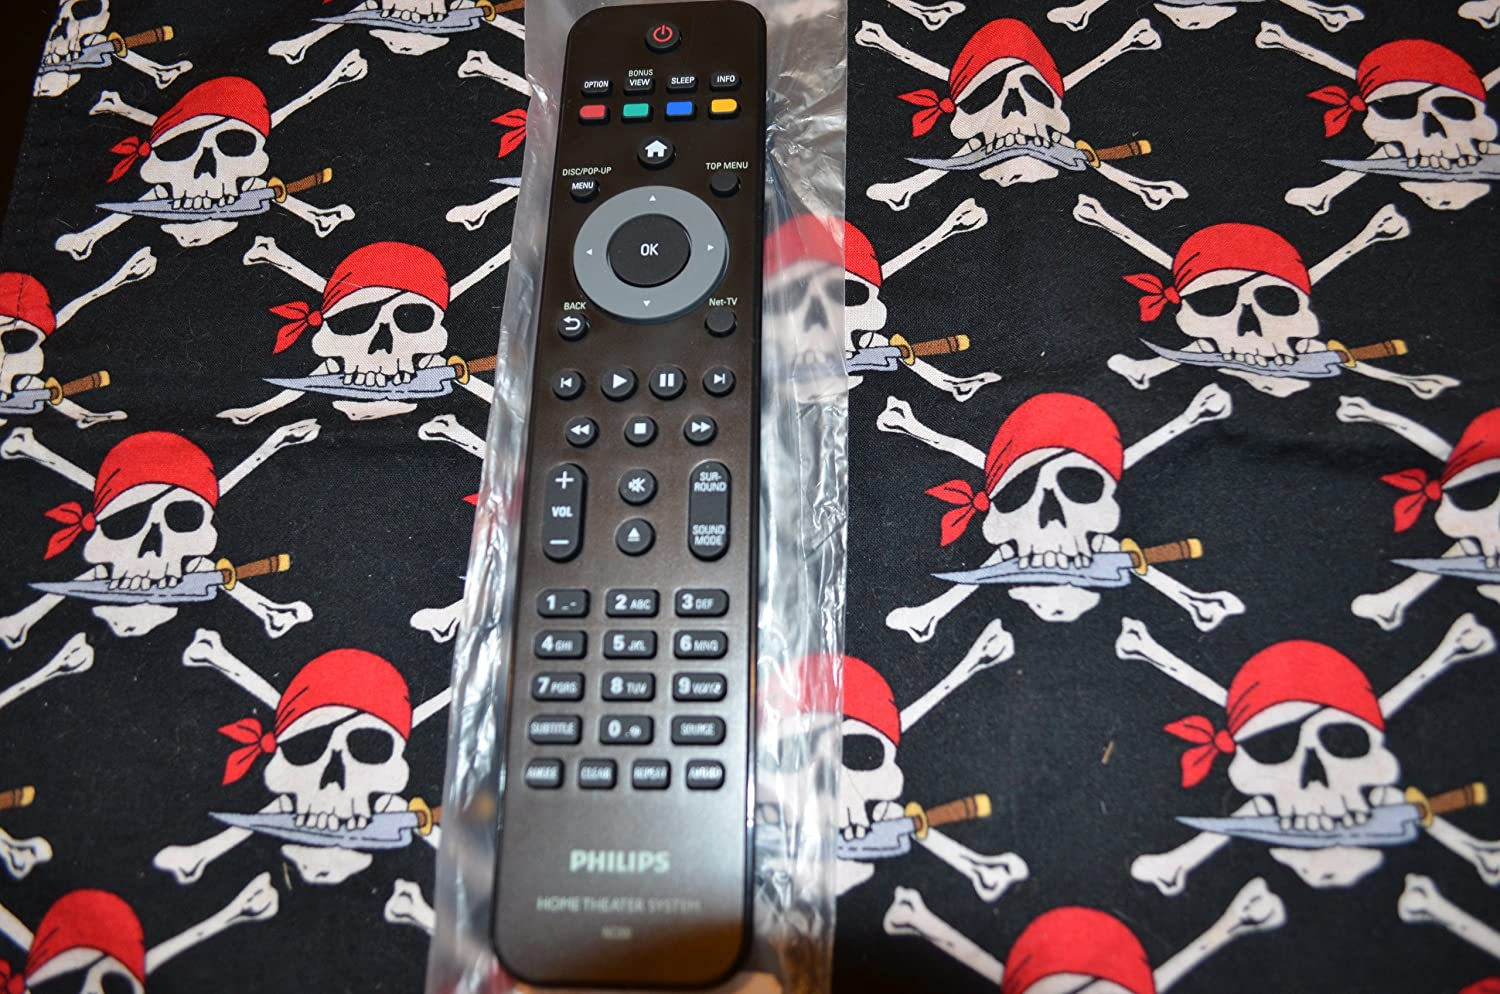 NEW Philips DVD Home Theater Remote Control NC200UD Supplied with models: HTS3306 HTS5506